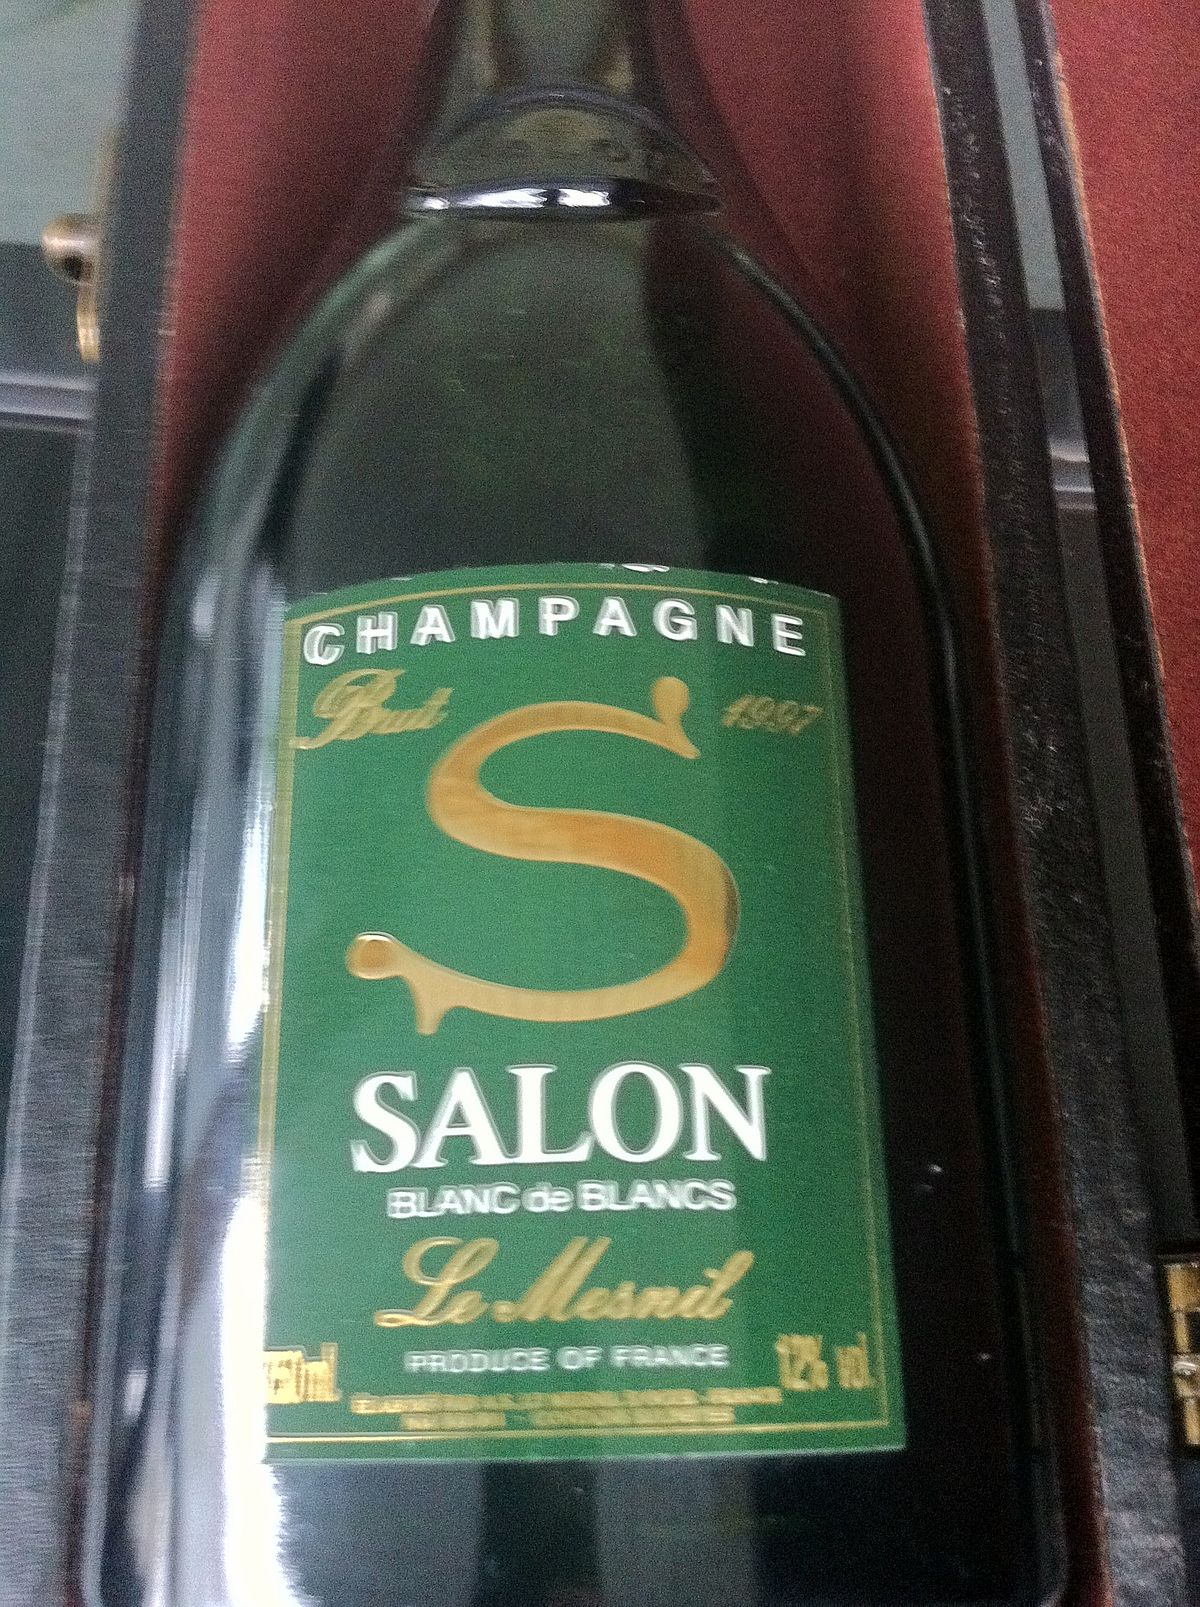 Champagne Salon Champagne Salon Wikipedia